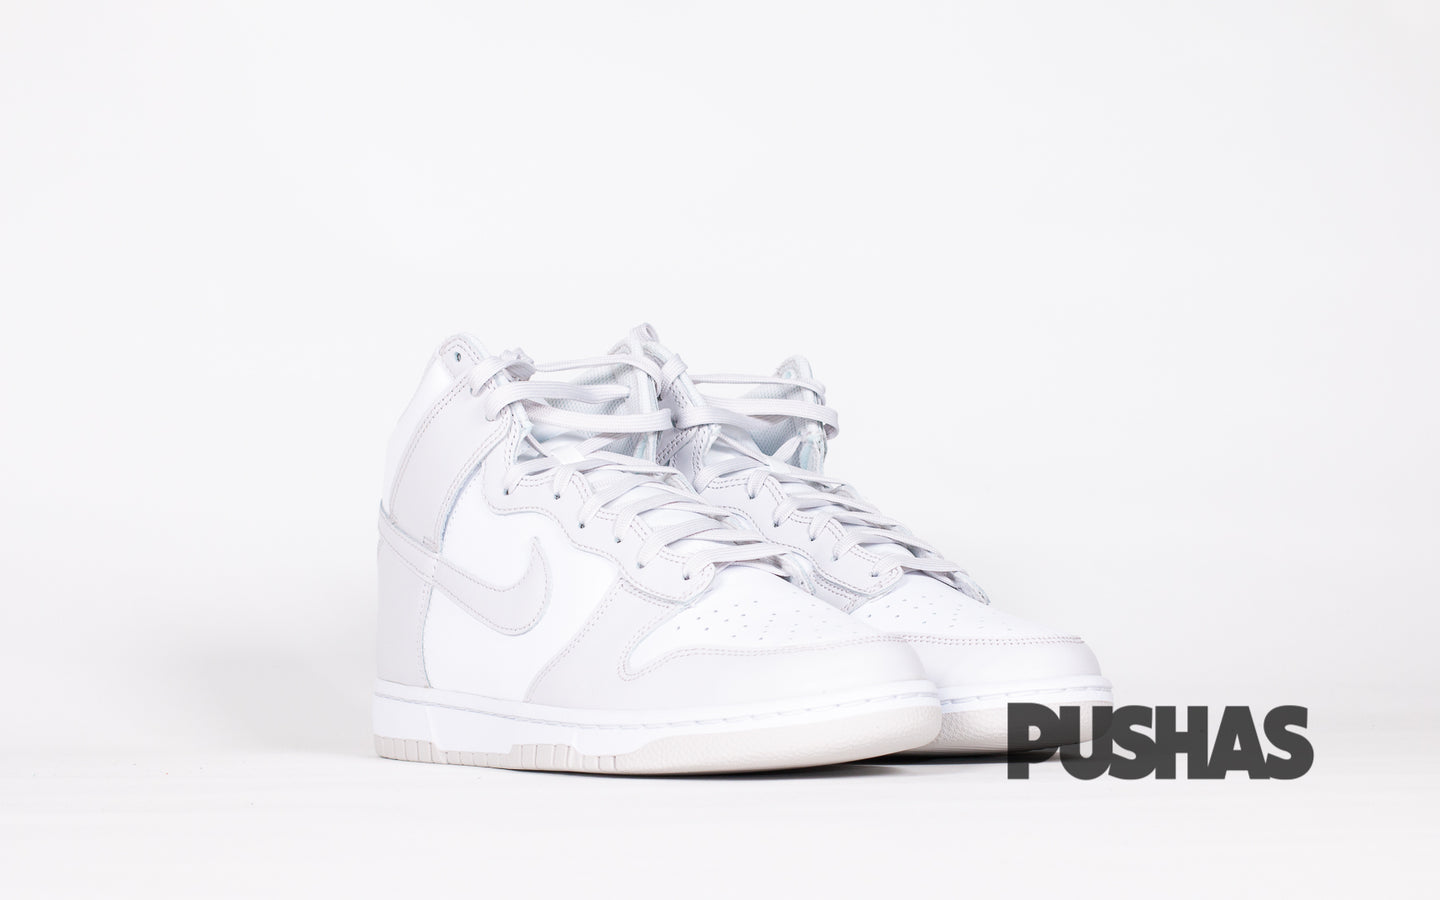 pushas-nike-Dunk-High-Vast-Grey